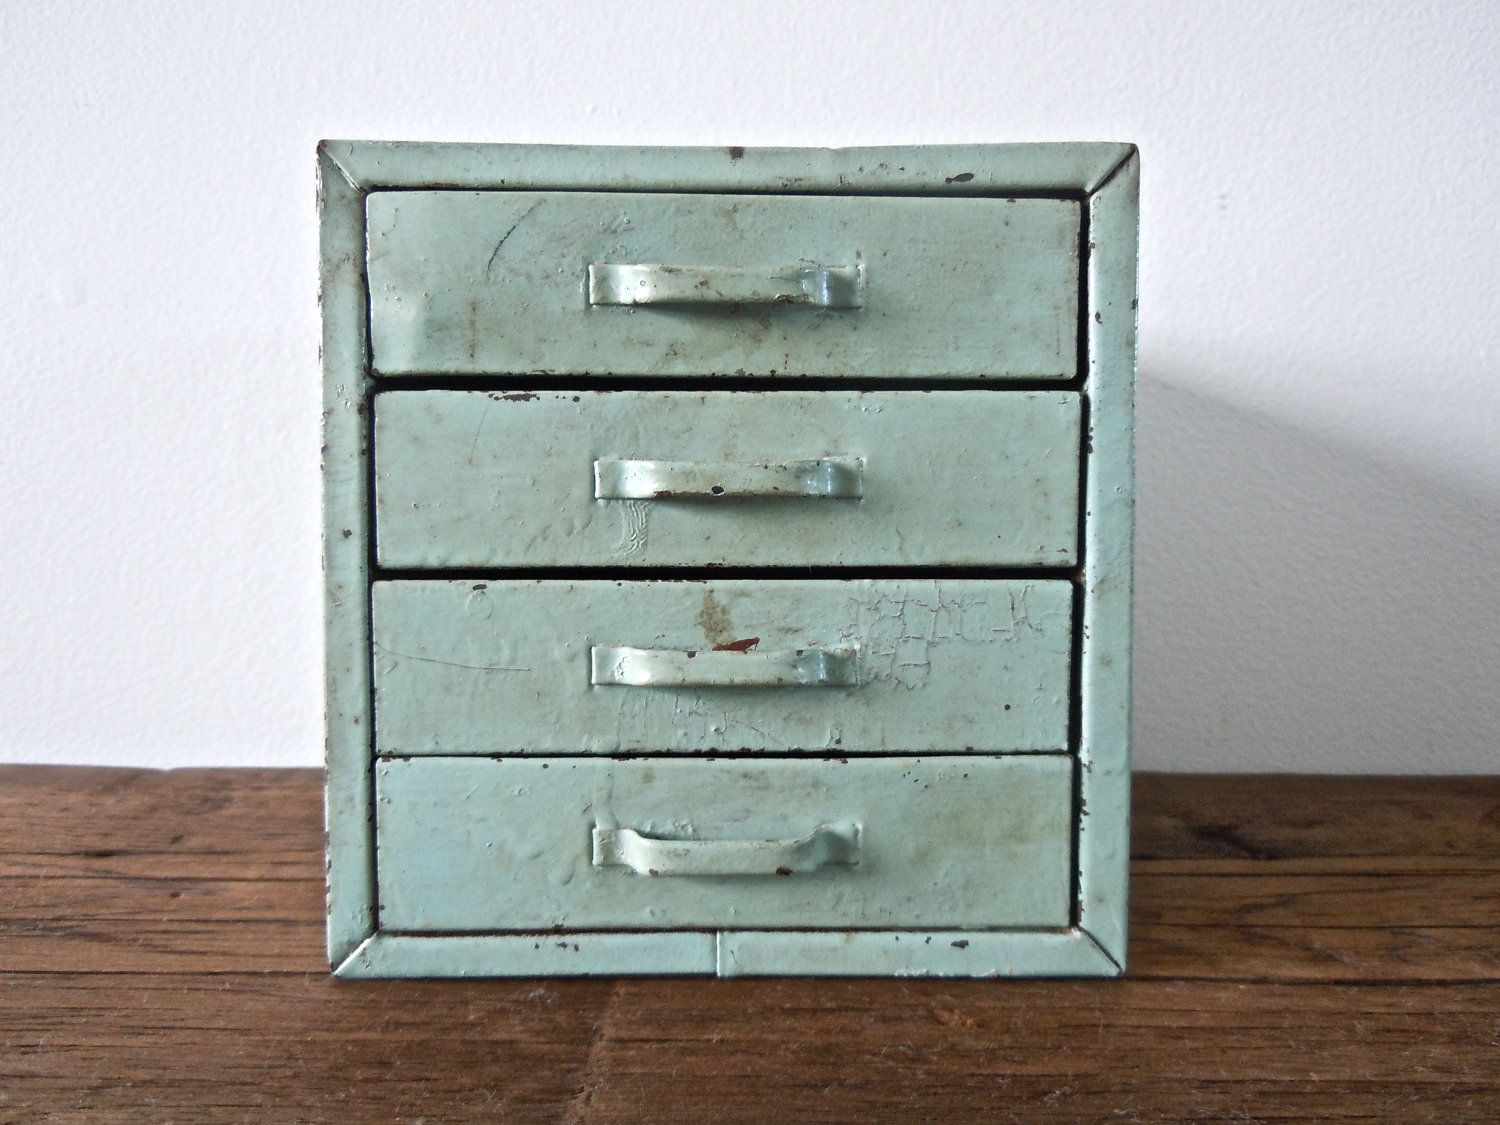 Rare Mint Green Metal Box With Drawers Desk Organizer Jewelry